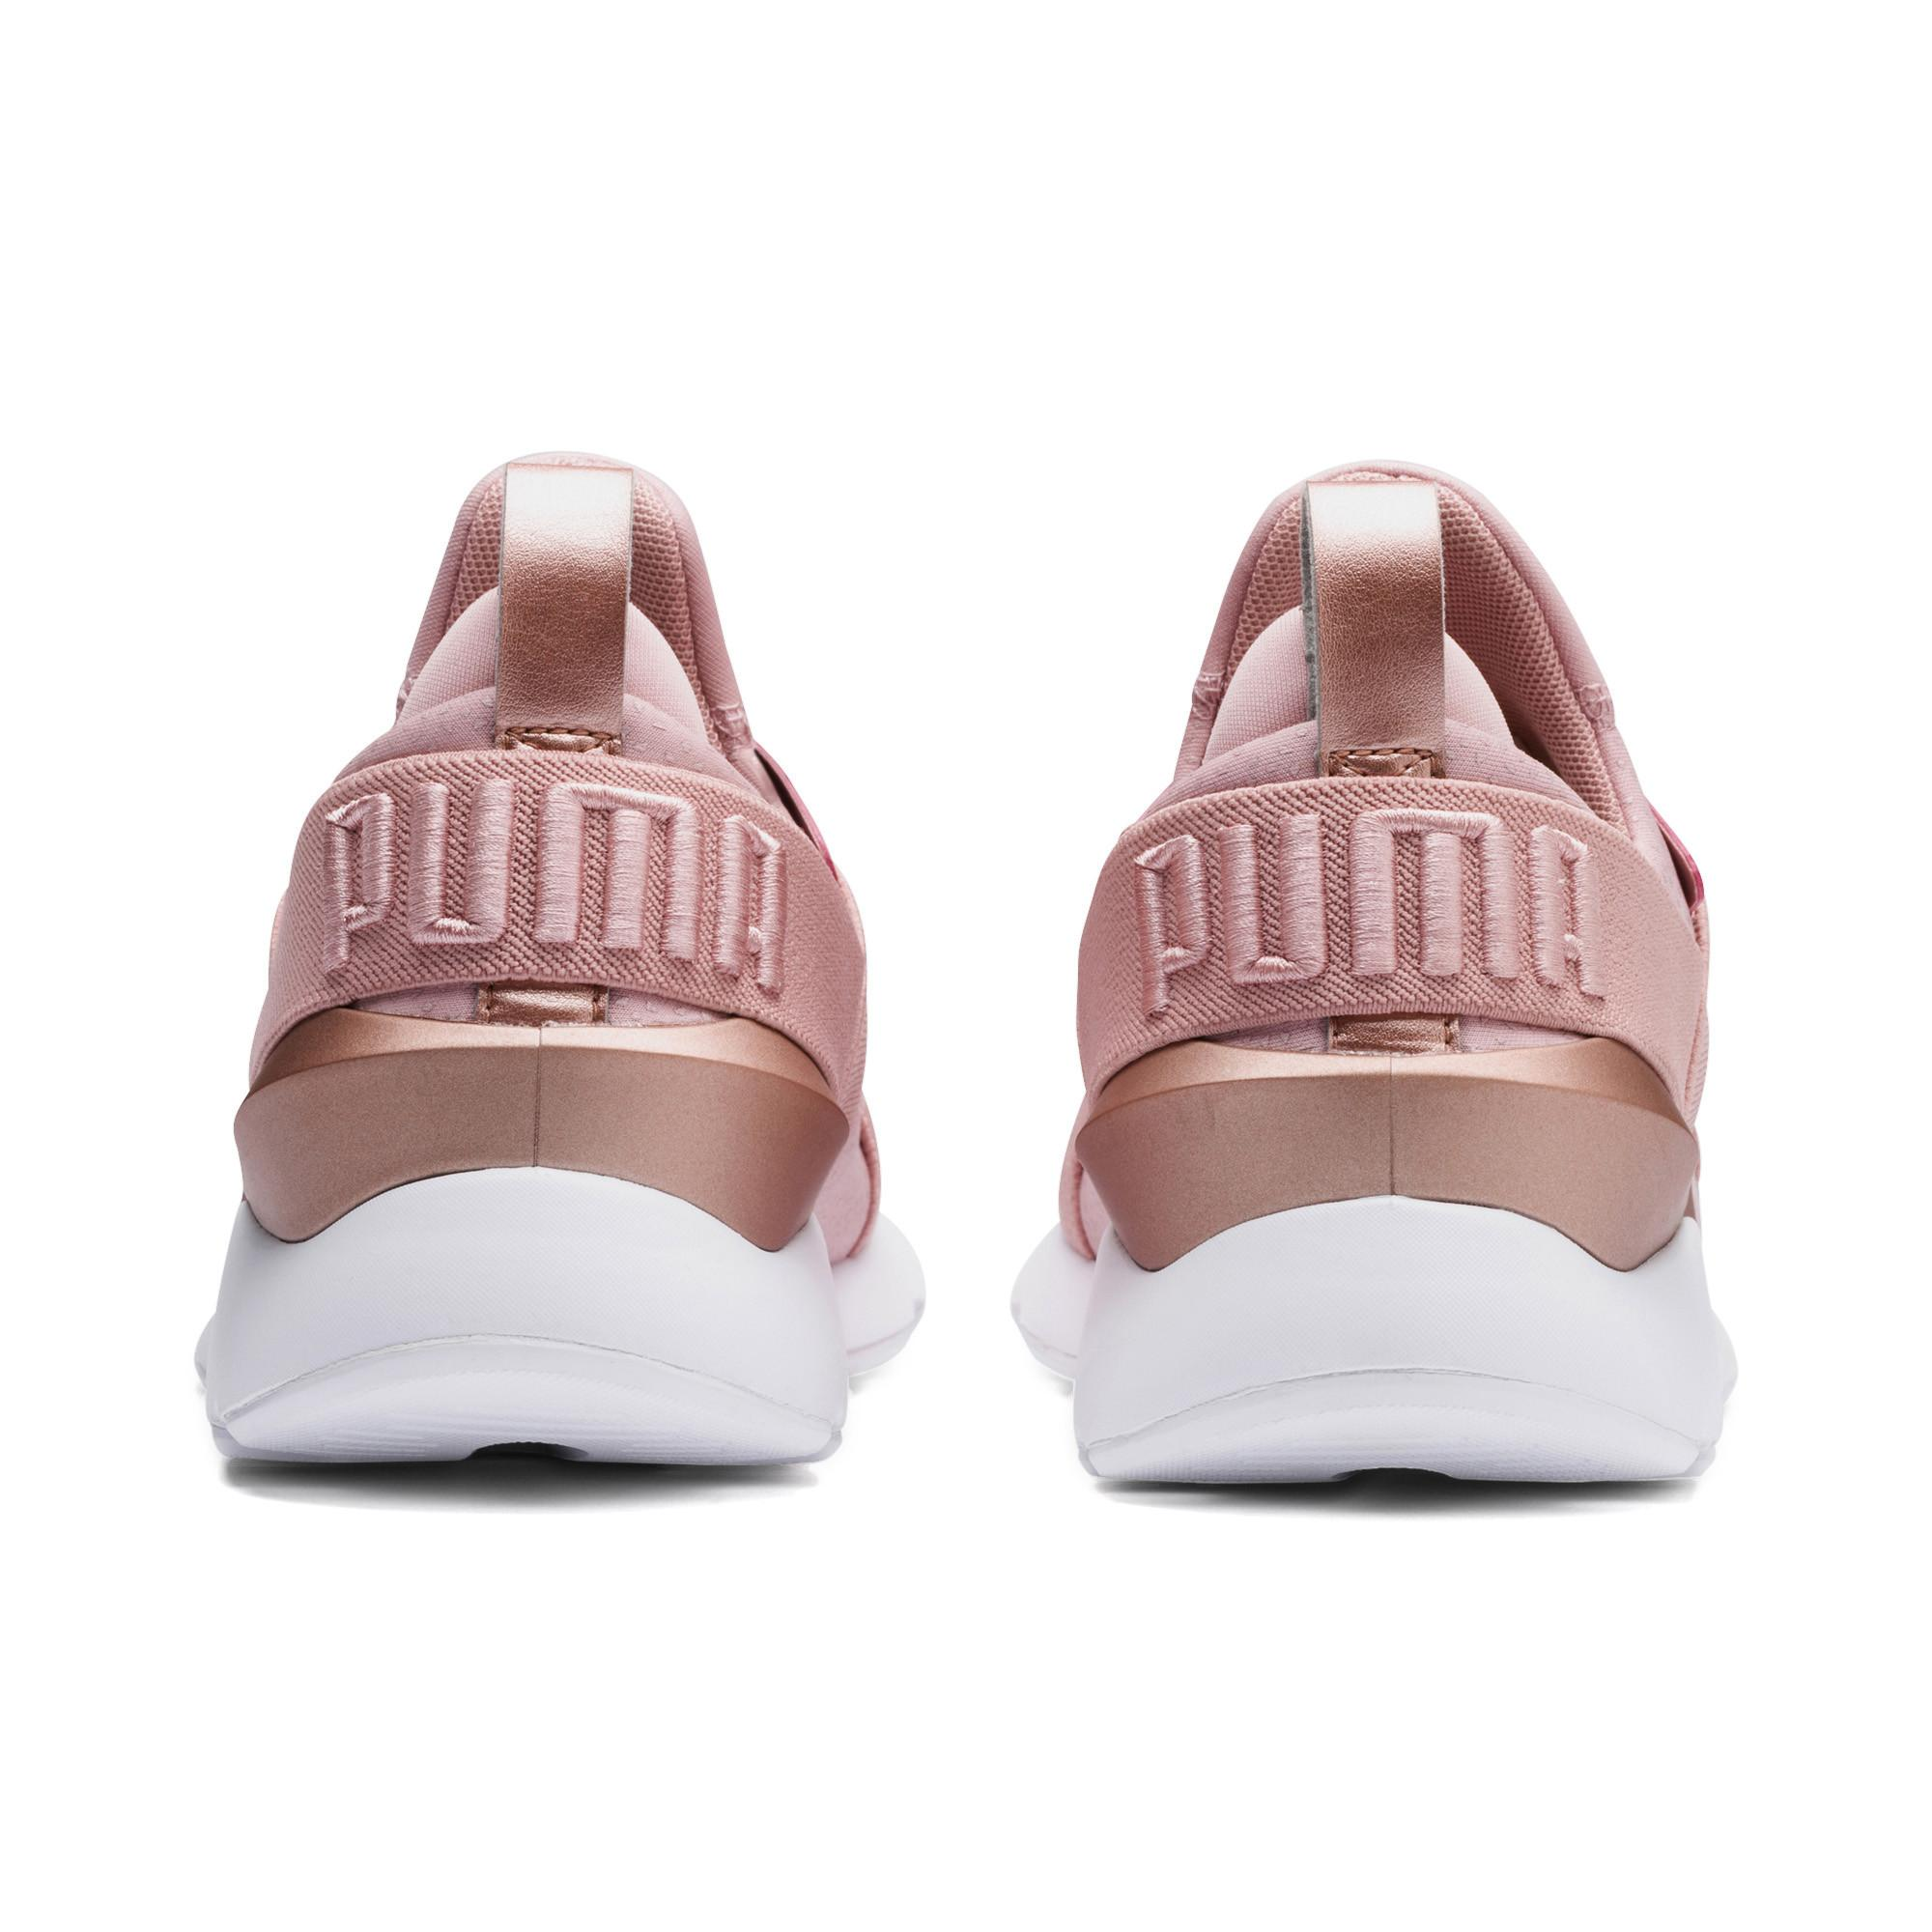 b08a50b537 Lyst - PUMA Muse Perf Women's Sneakers in Pink